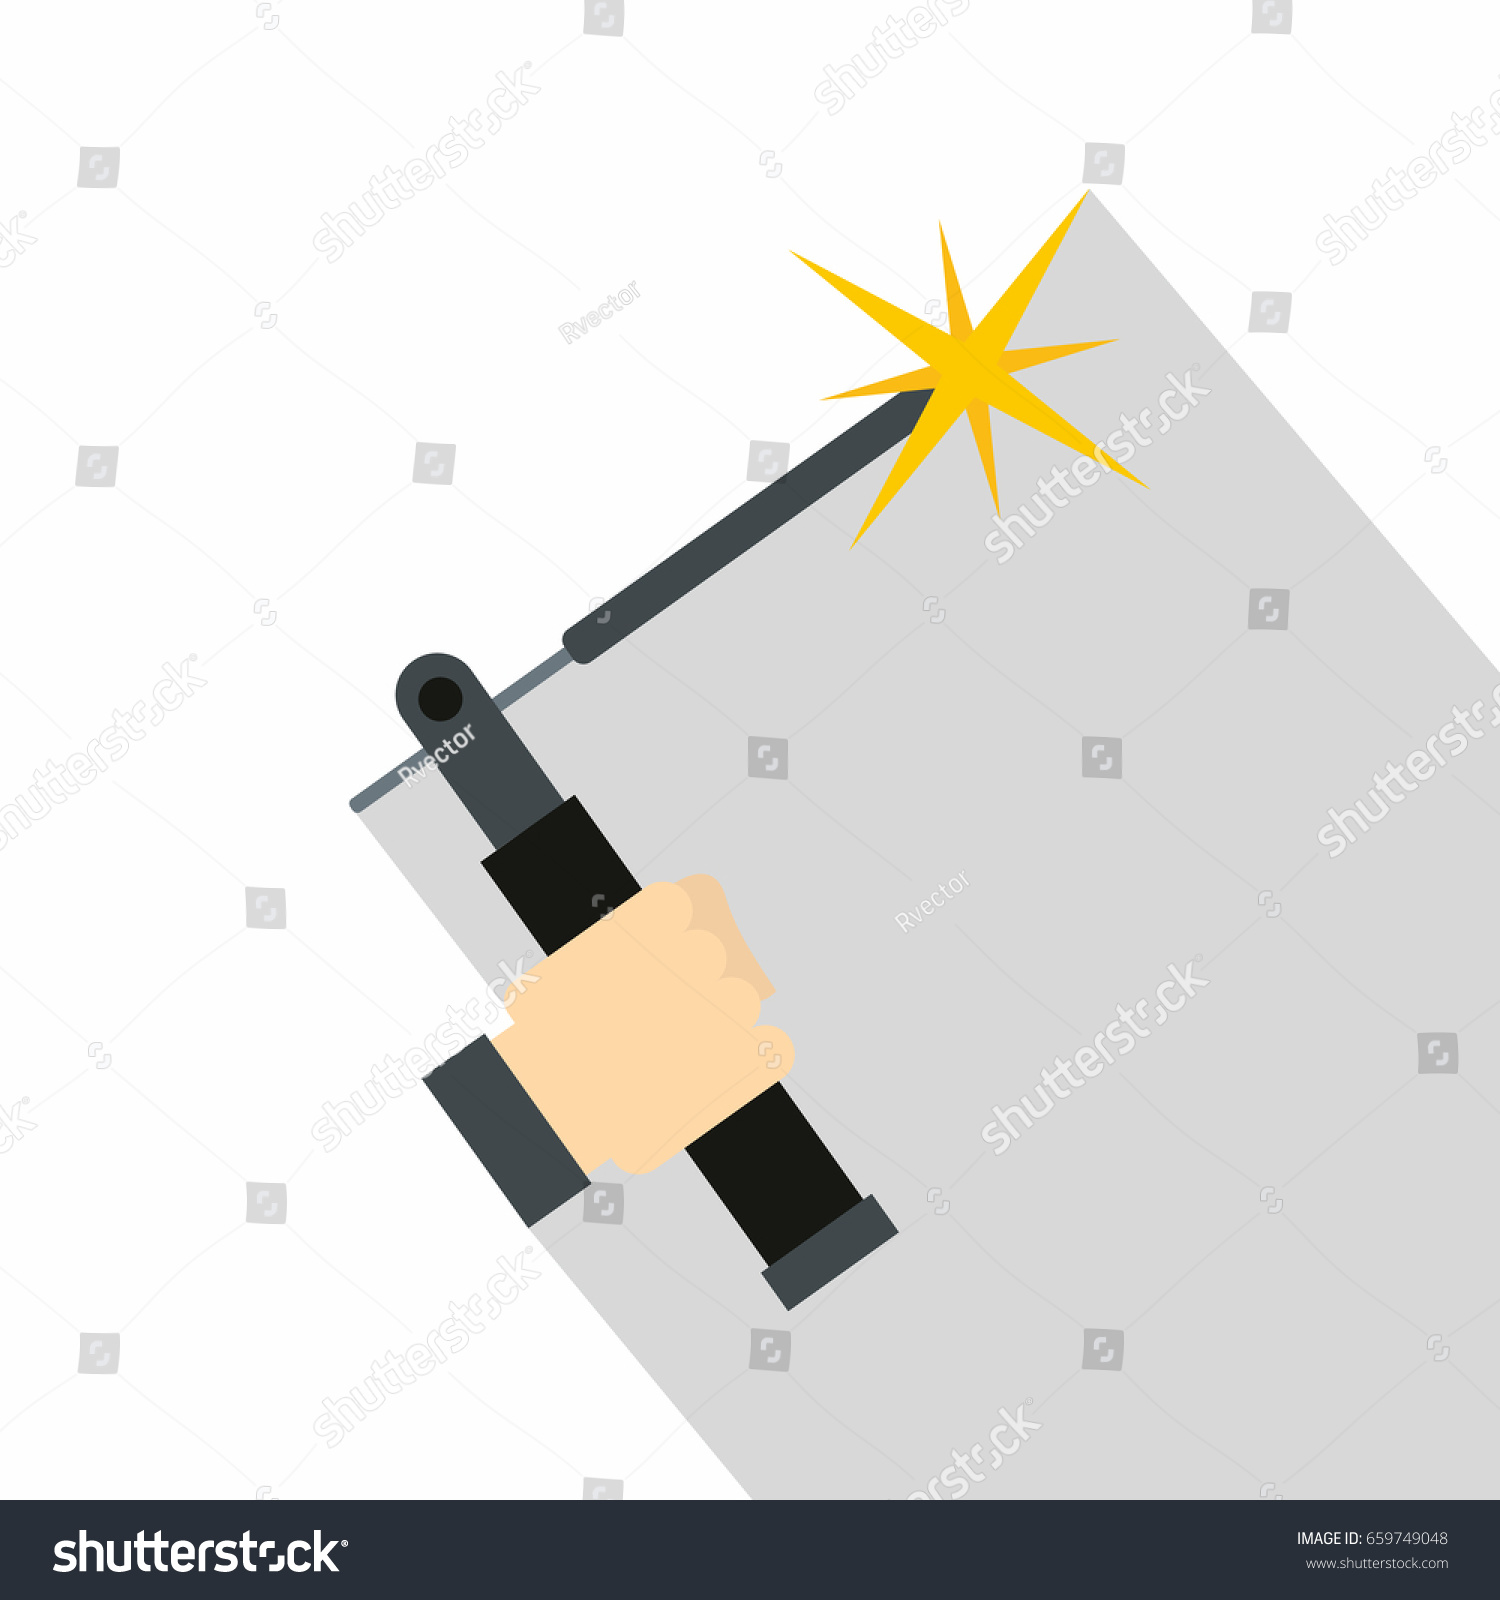 Mig Welding Torch Hand Icon Flat Stock Illustration 659749048 Diagram In Of